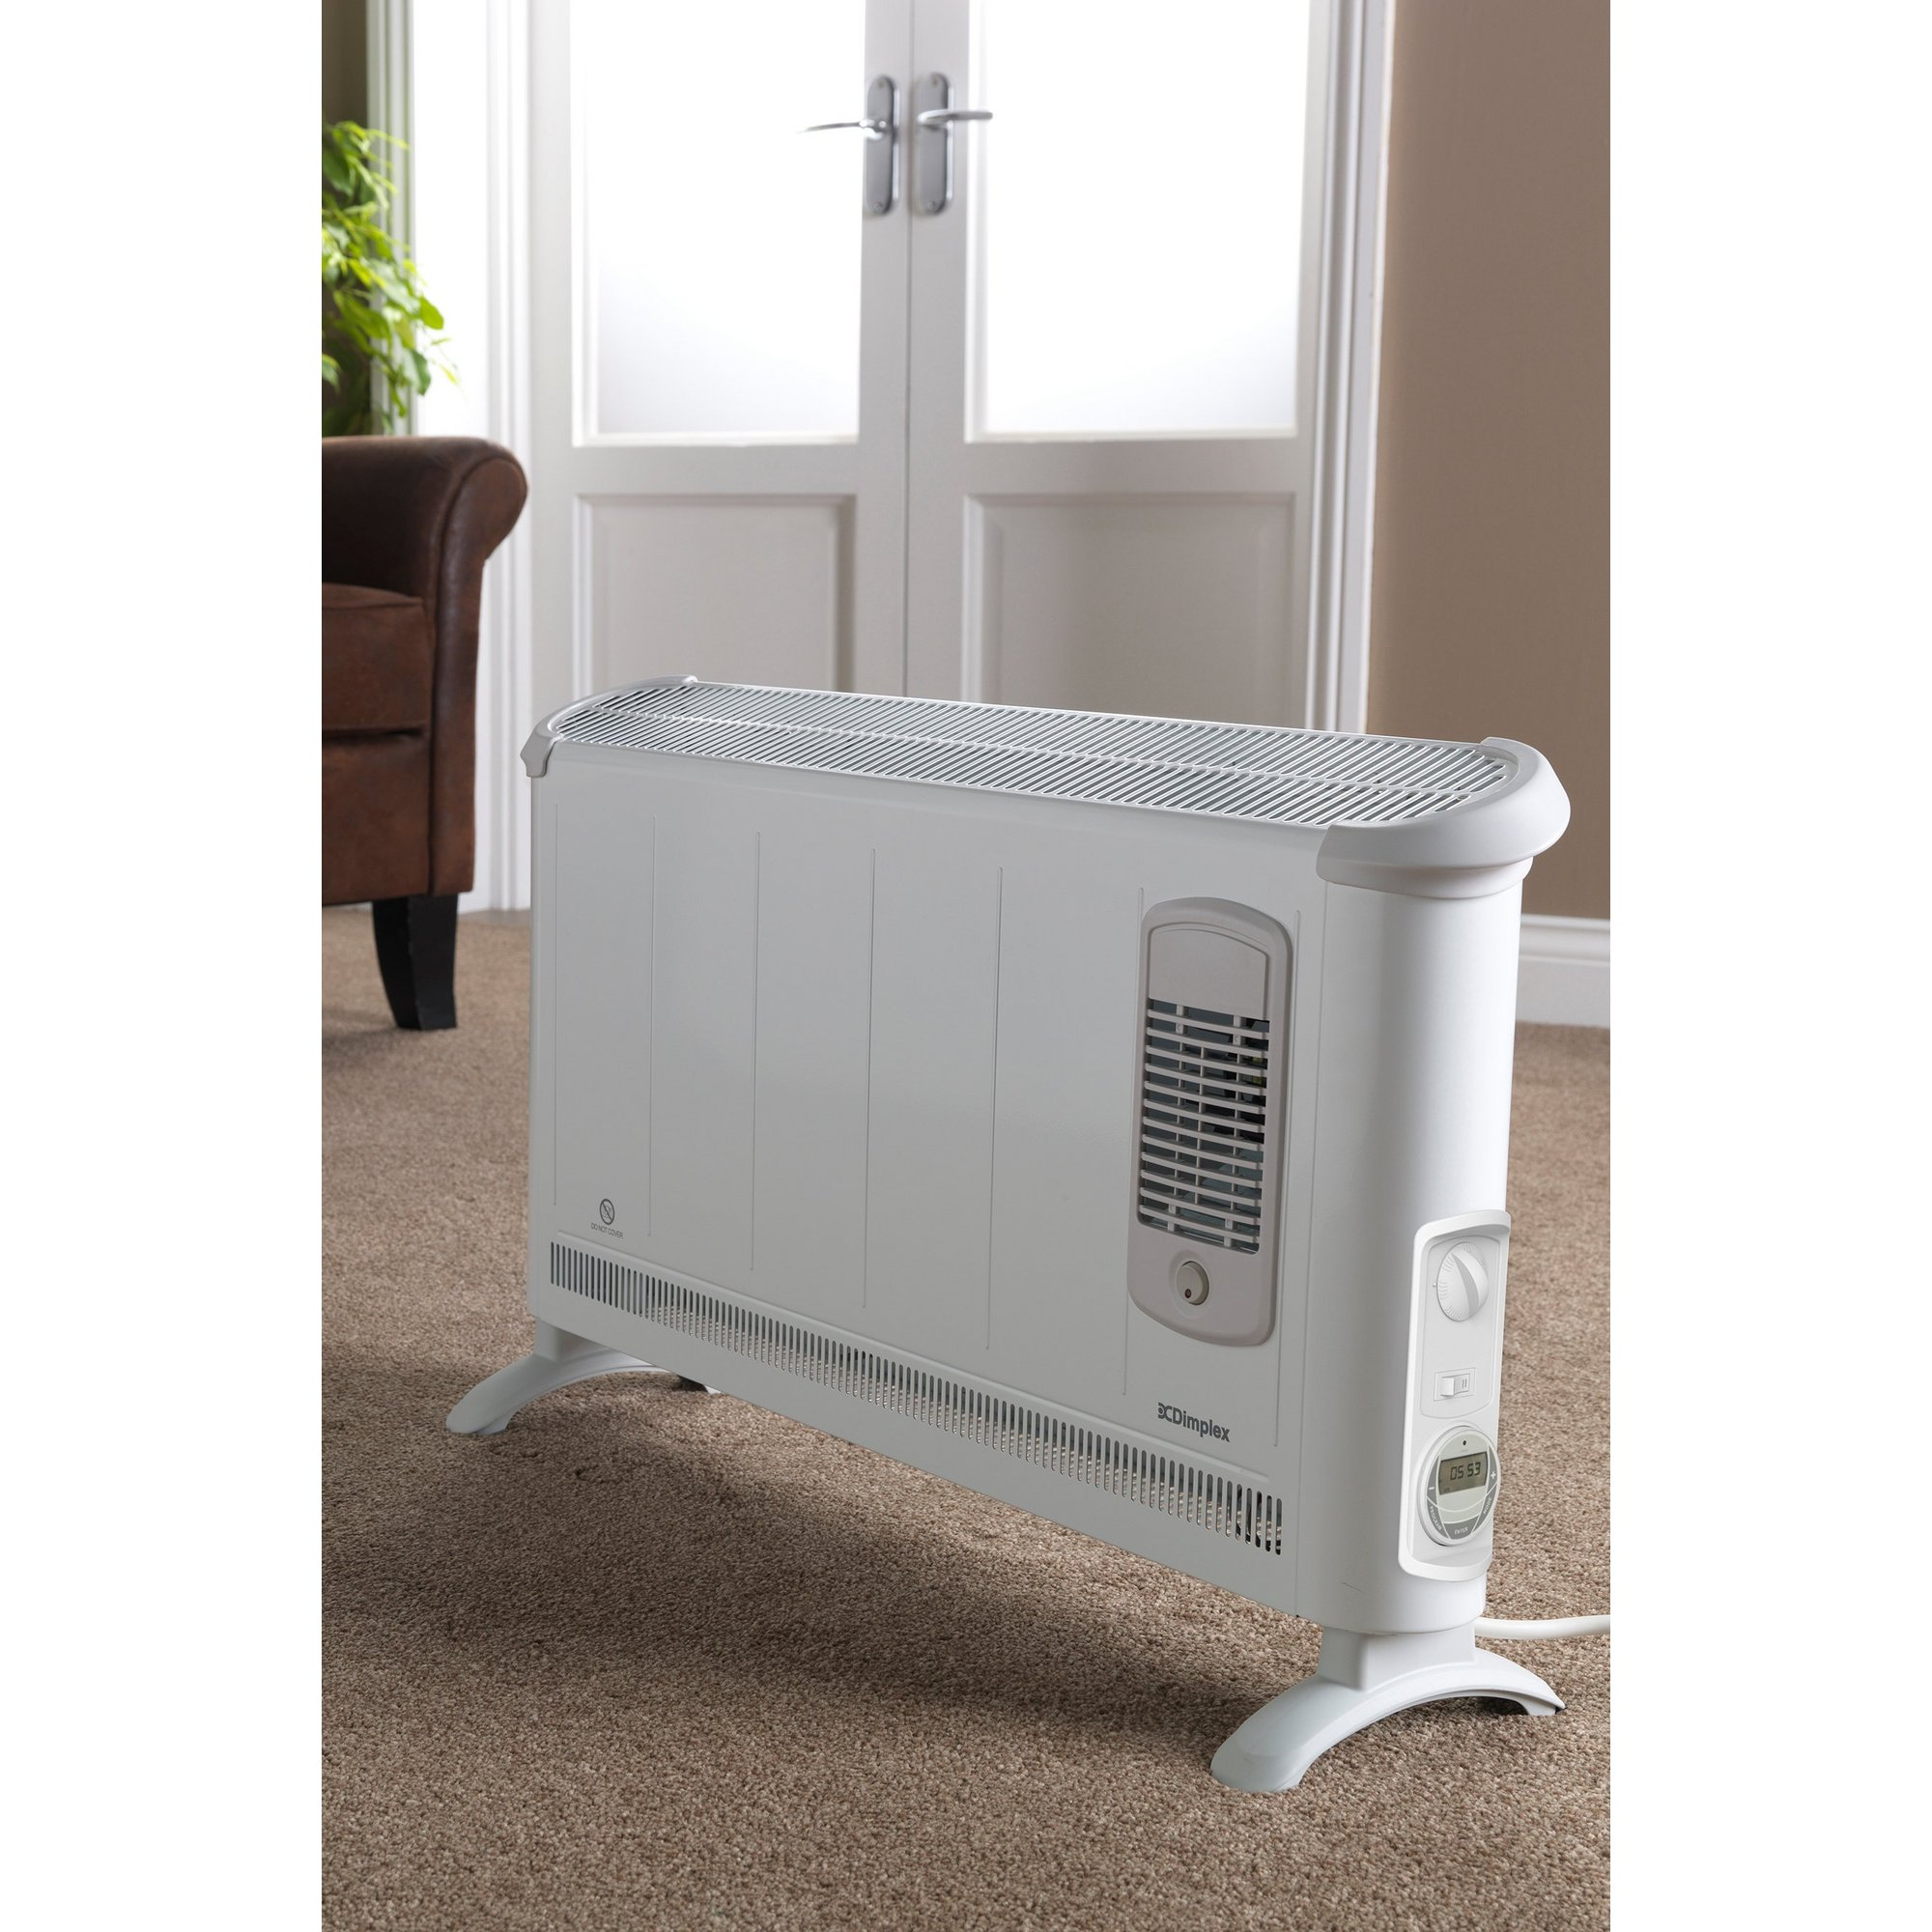 Image of Dimplex 3000W Convector Heater with Turbo Fan and Timer